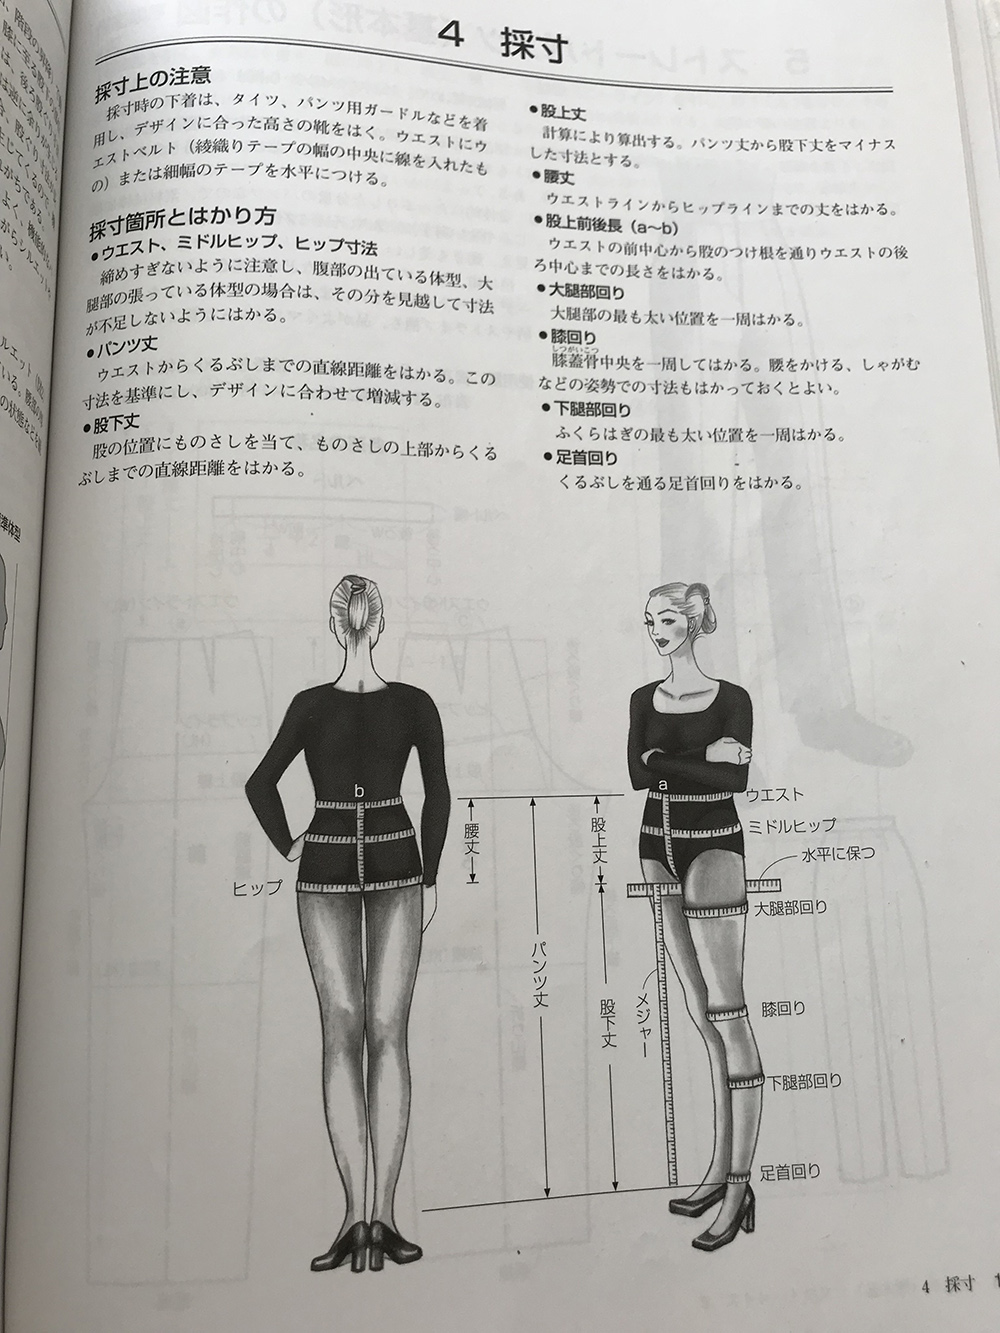 Bunka-pants and skirts-pants-measurements-explanation.jpg